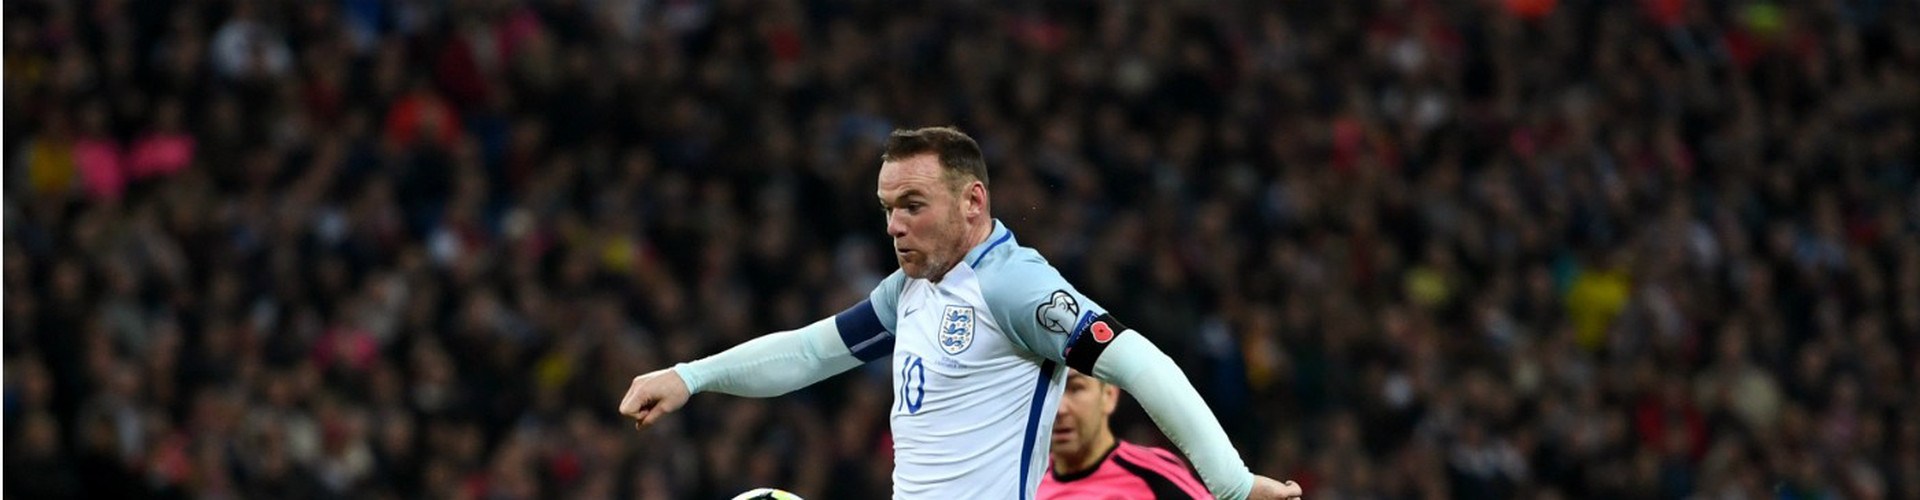 Rooney and England stars in trouble after 'massive booze-up'